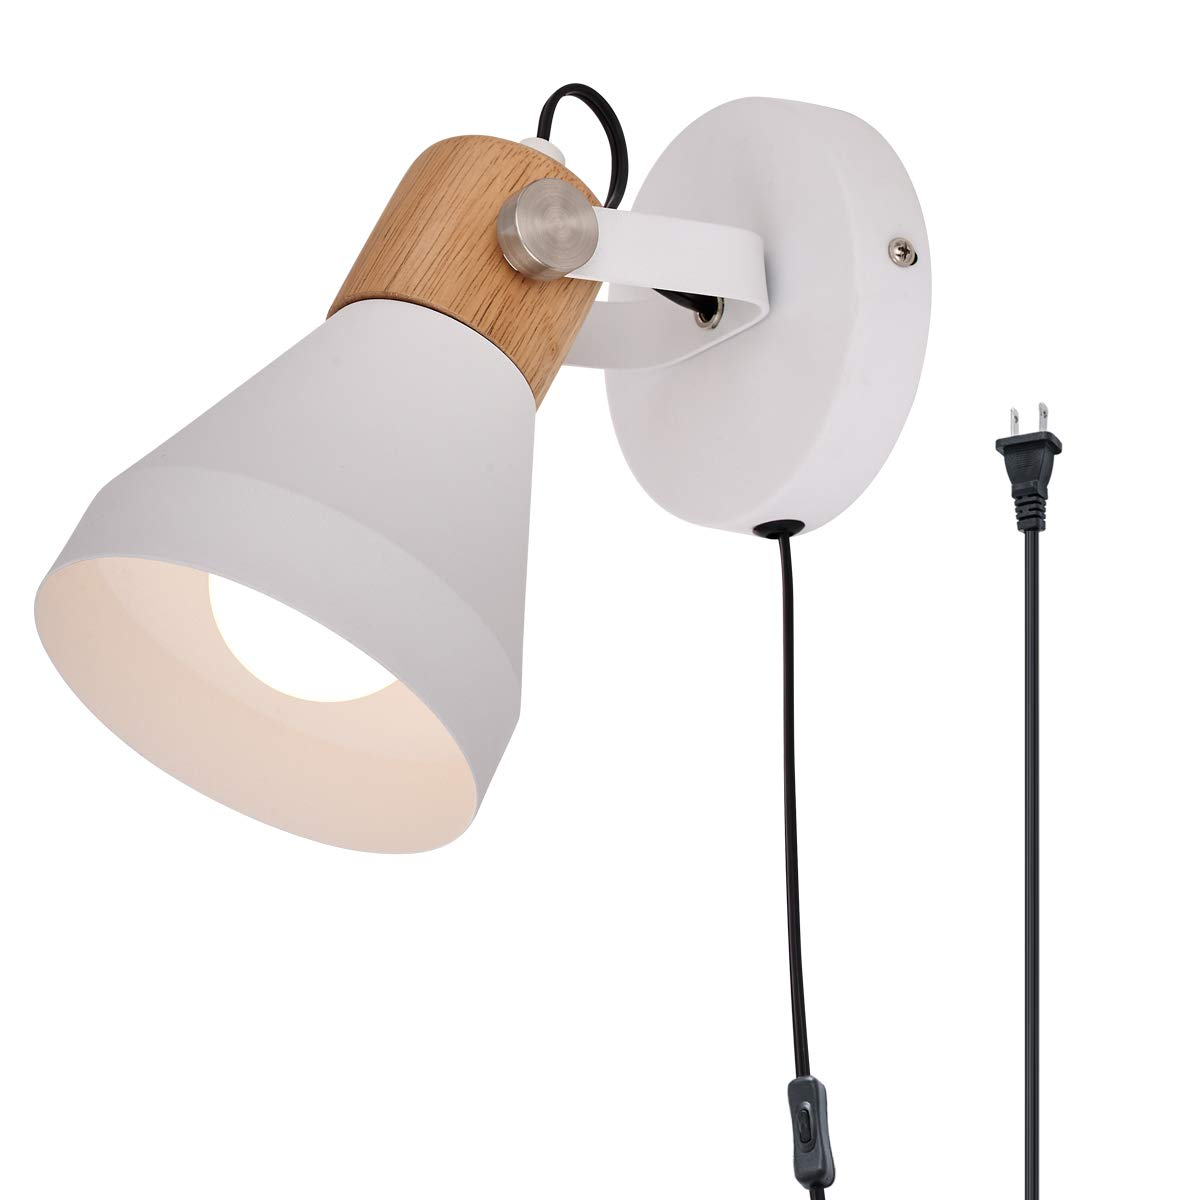 TeHenoo Minimalist Plug-in Wall Sconce Modern White Wall Lamp with Cord Contemporary Rotatable Wall Light Fixture for Bedroom Living Room Bedside Lamp